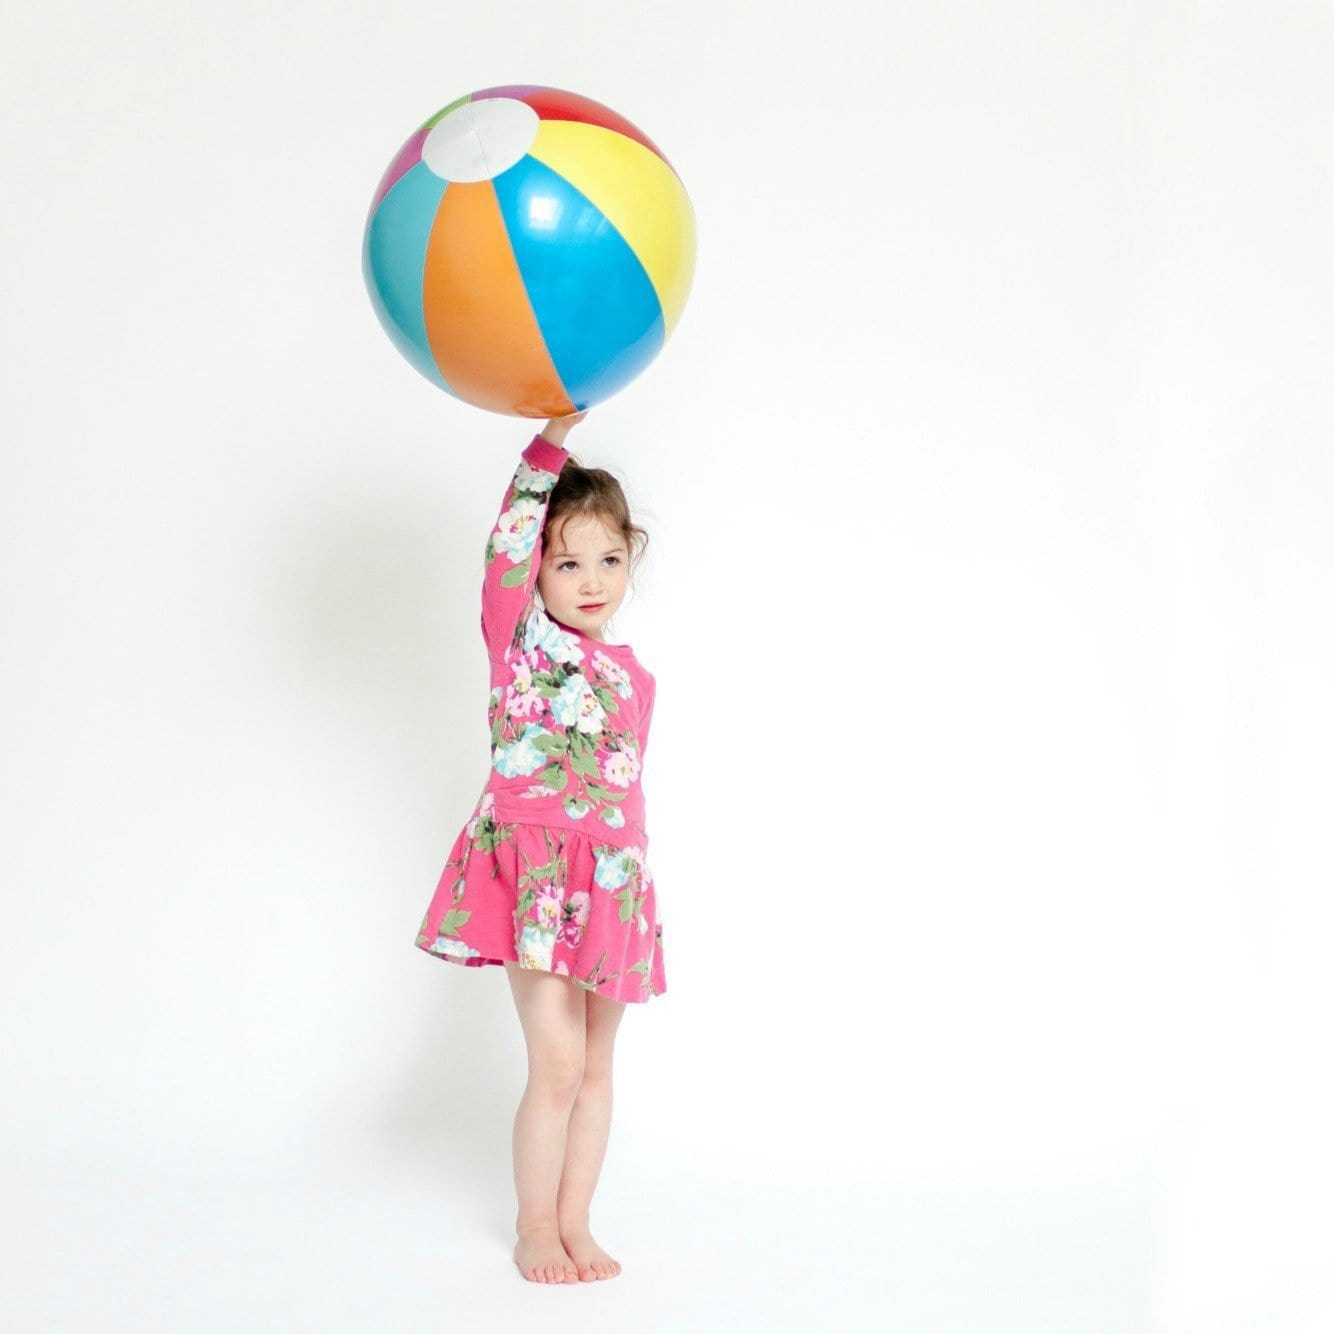 Beachball Balloon | Kids Party Balloons | Giant Foil Balloon Shapes